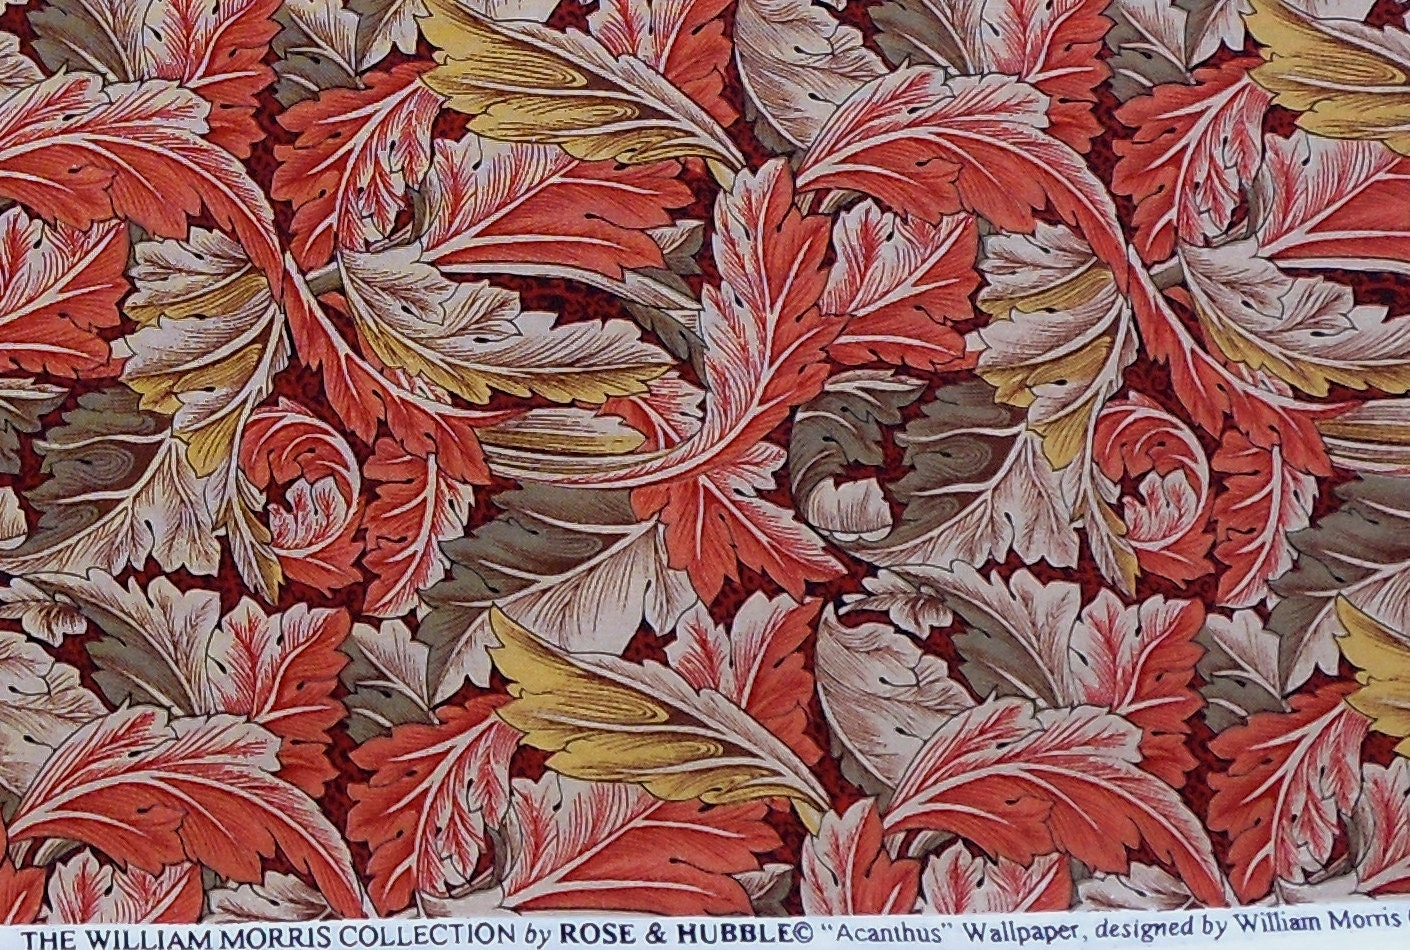 The William Morris Collection 1 Yard Of Acanthus